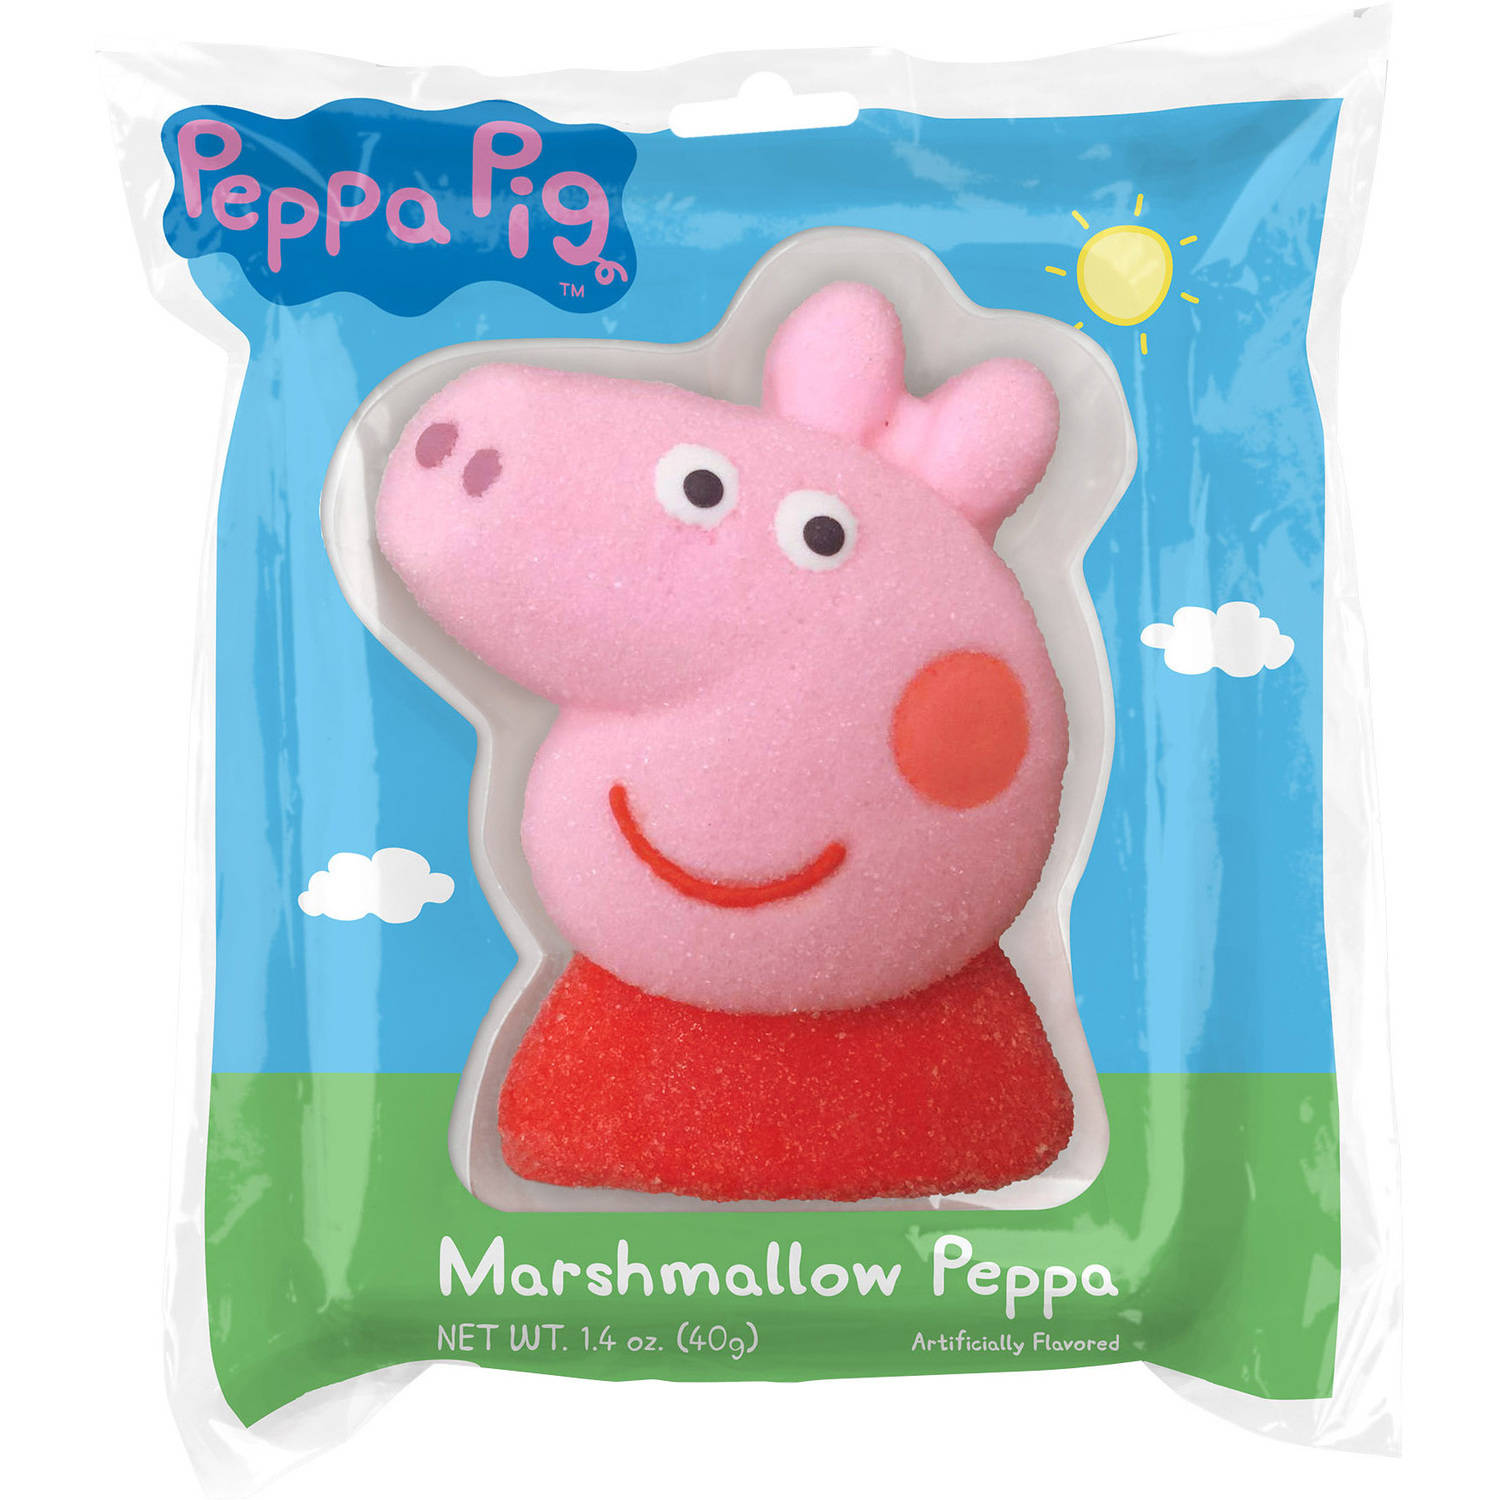 Peppa Pig Marshmallow Peppa,1.4 oz